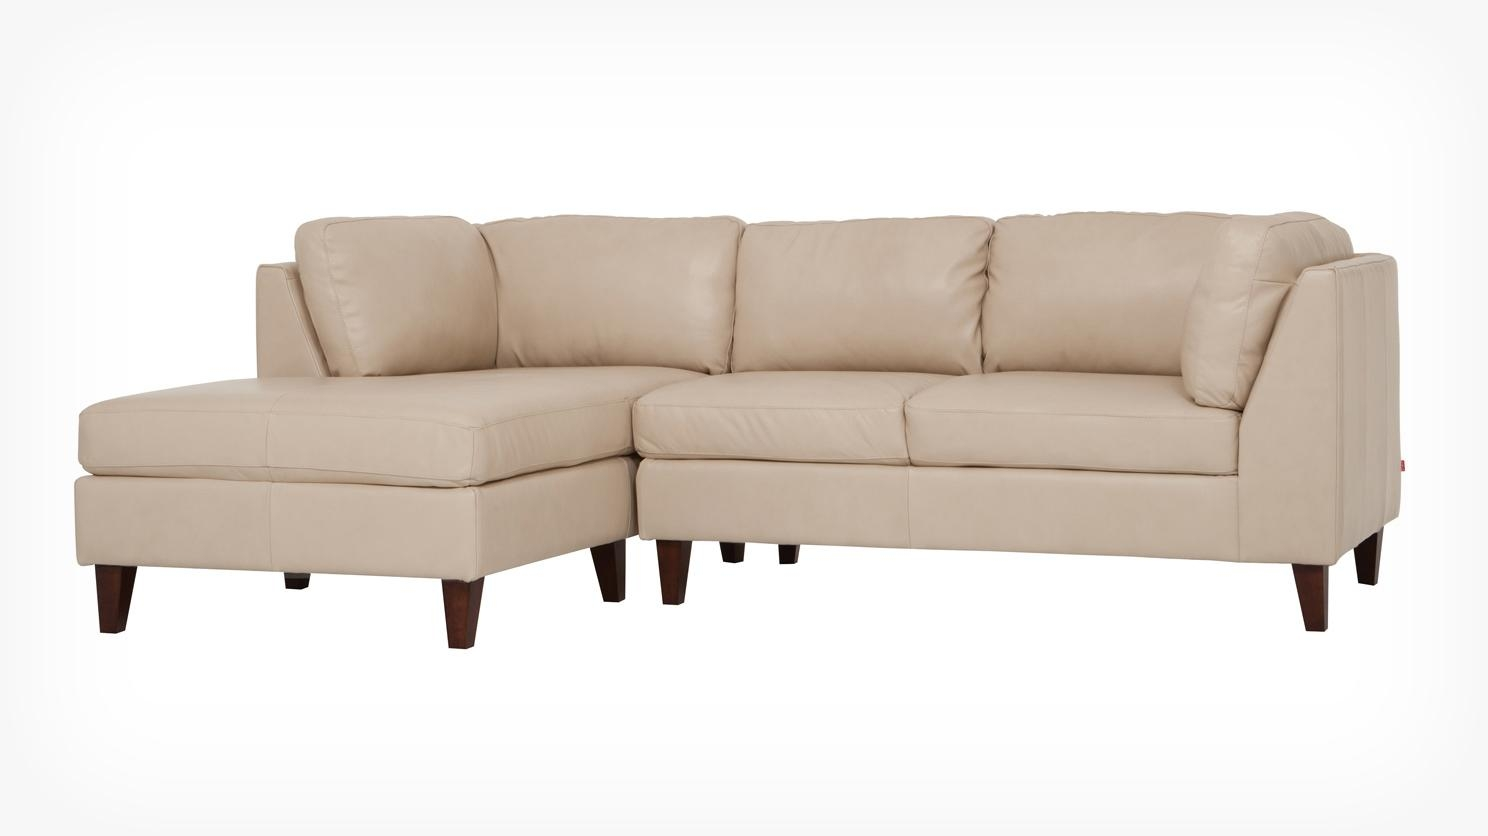 Eq3 | Salema 2 Piece Sectional Sofa With Chaise – Leather With Small 2 Piece Sectional (View 11 of 20)